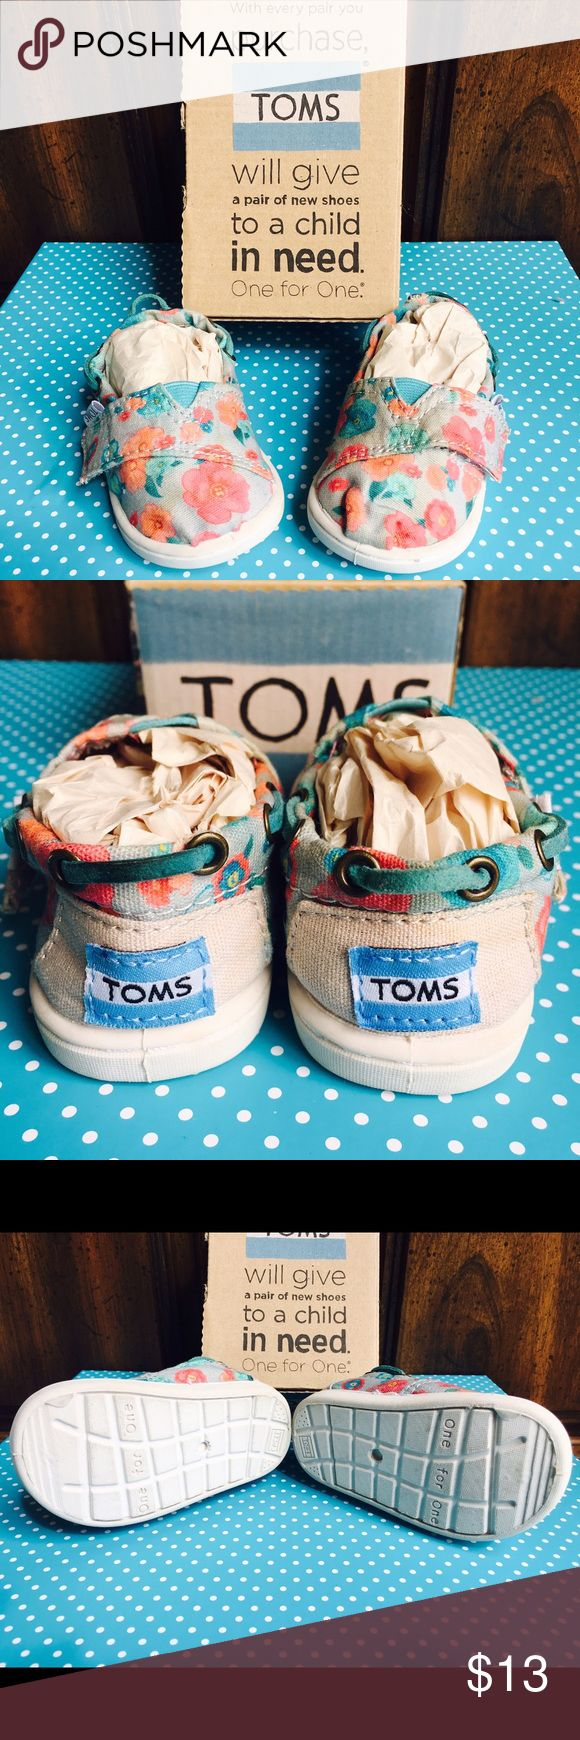 "Kids ""TOMS"" shoes Size 4t turquoise and coral floral print on a light gray base TOMS Shoes"